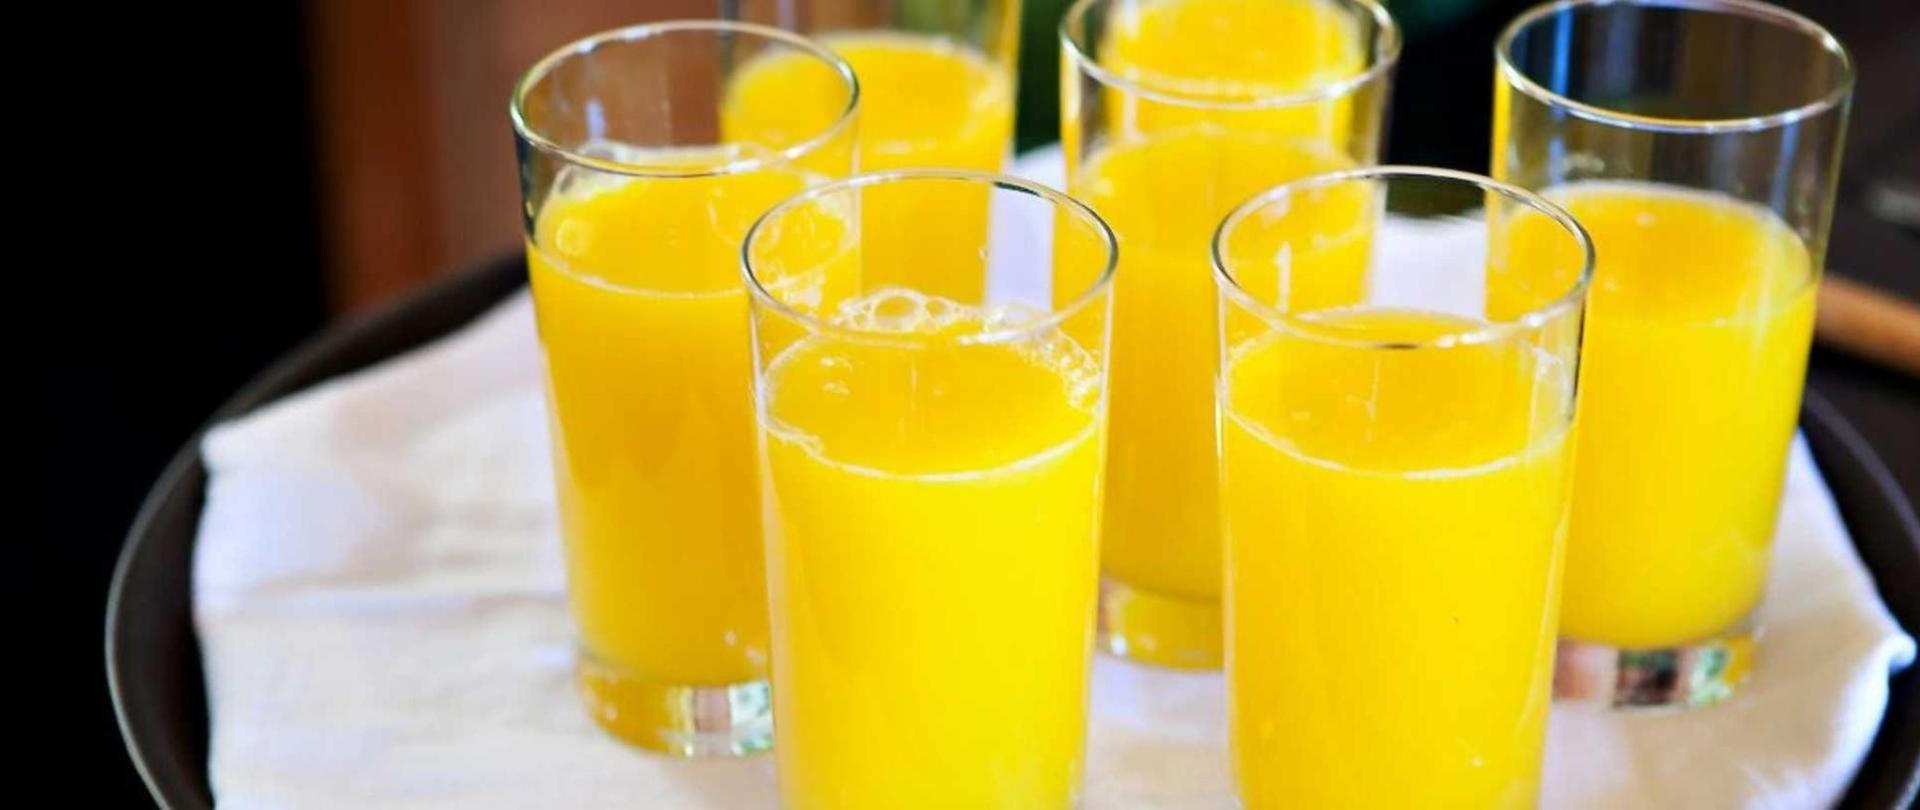 fresh-squeezed-orange-juice1.jpg.1920x807_default.jpg